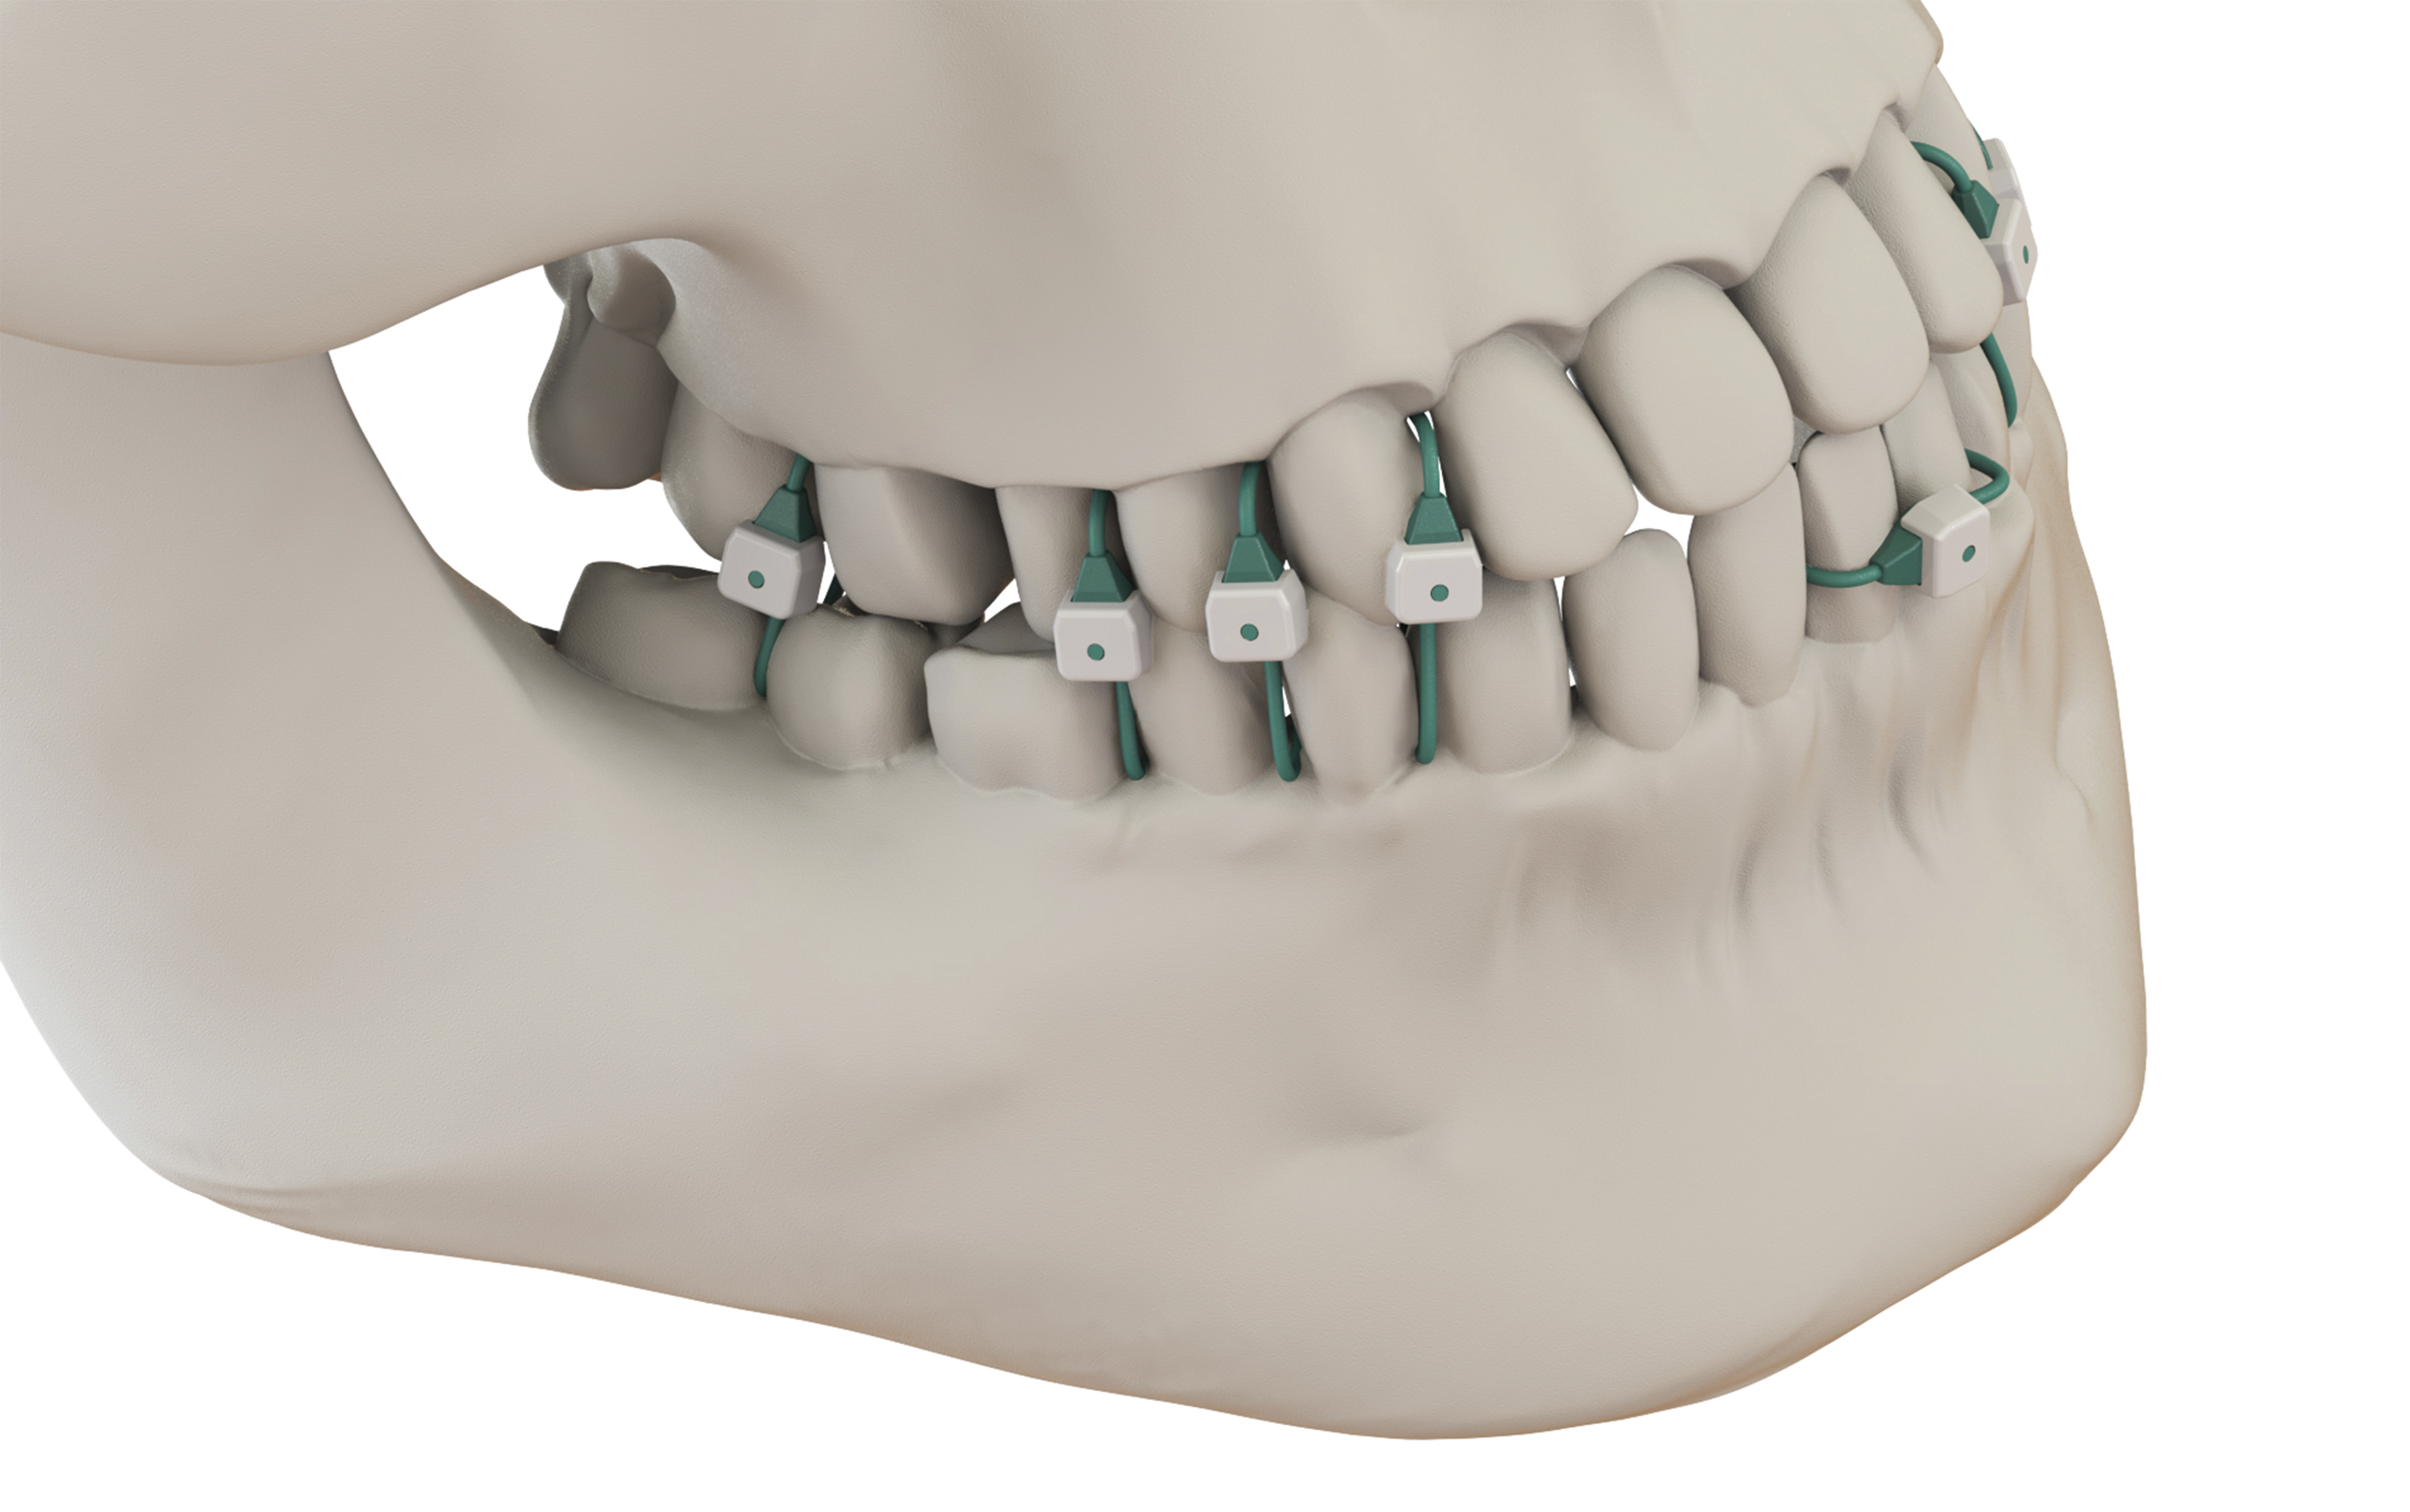 Minne Ties medical grade sutures securely hold the jaw in a closed position with less discomfort than metal wires to the patient and can be applied without the worry of wire stick risks to the surgeon. (Photo: Summit Medical, Inc.)